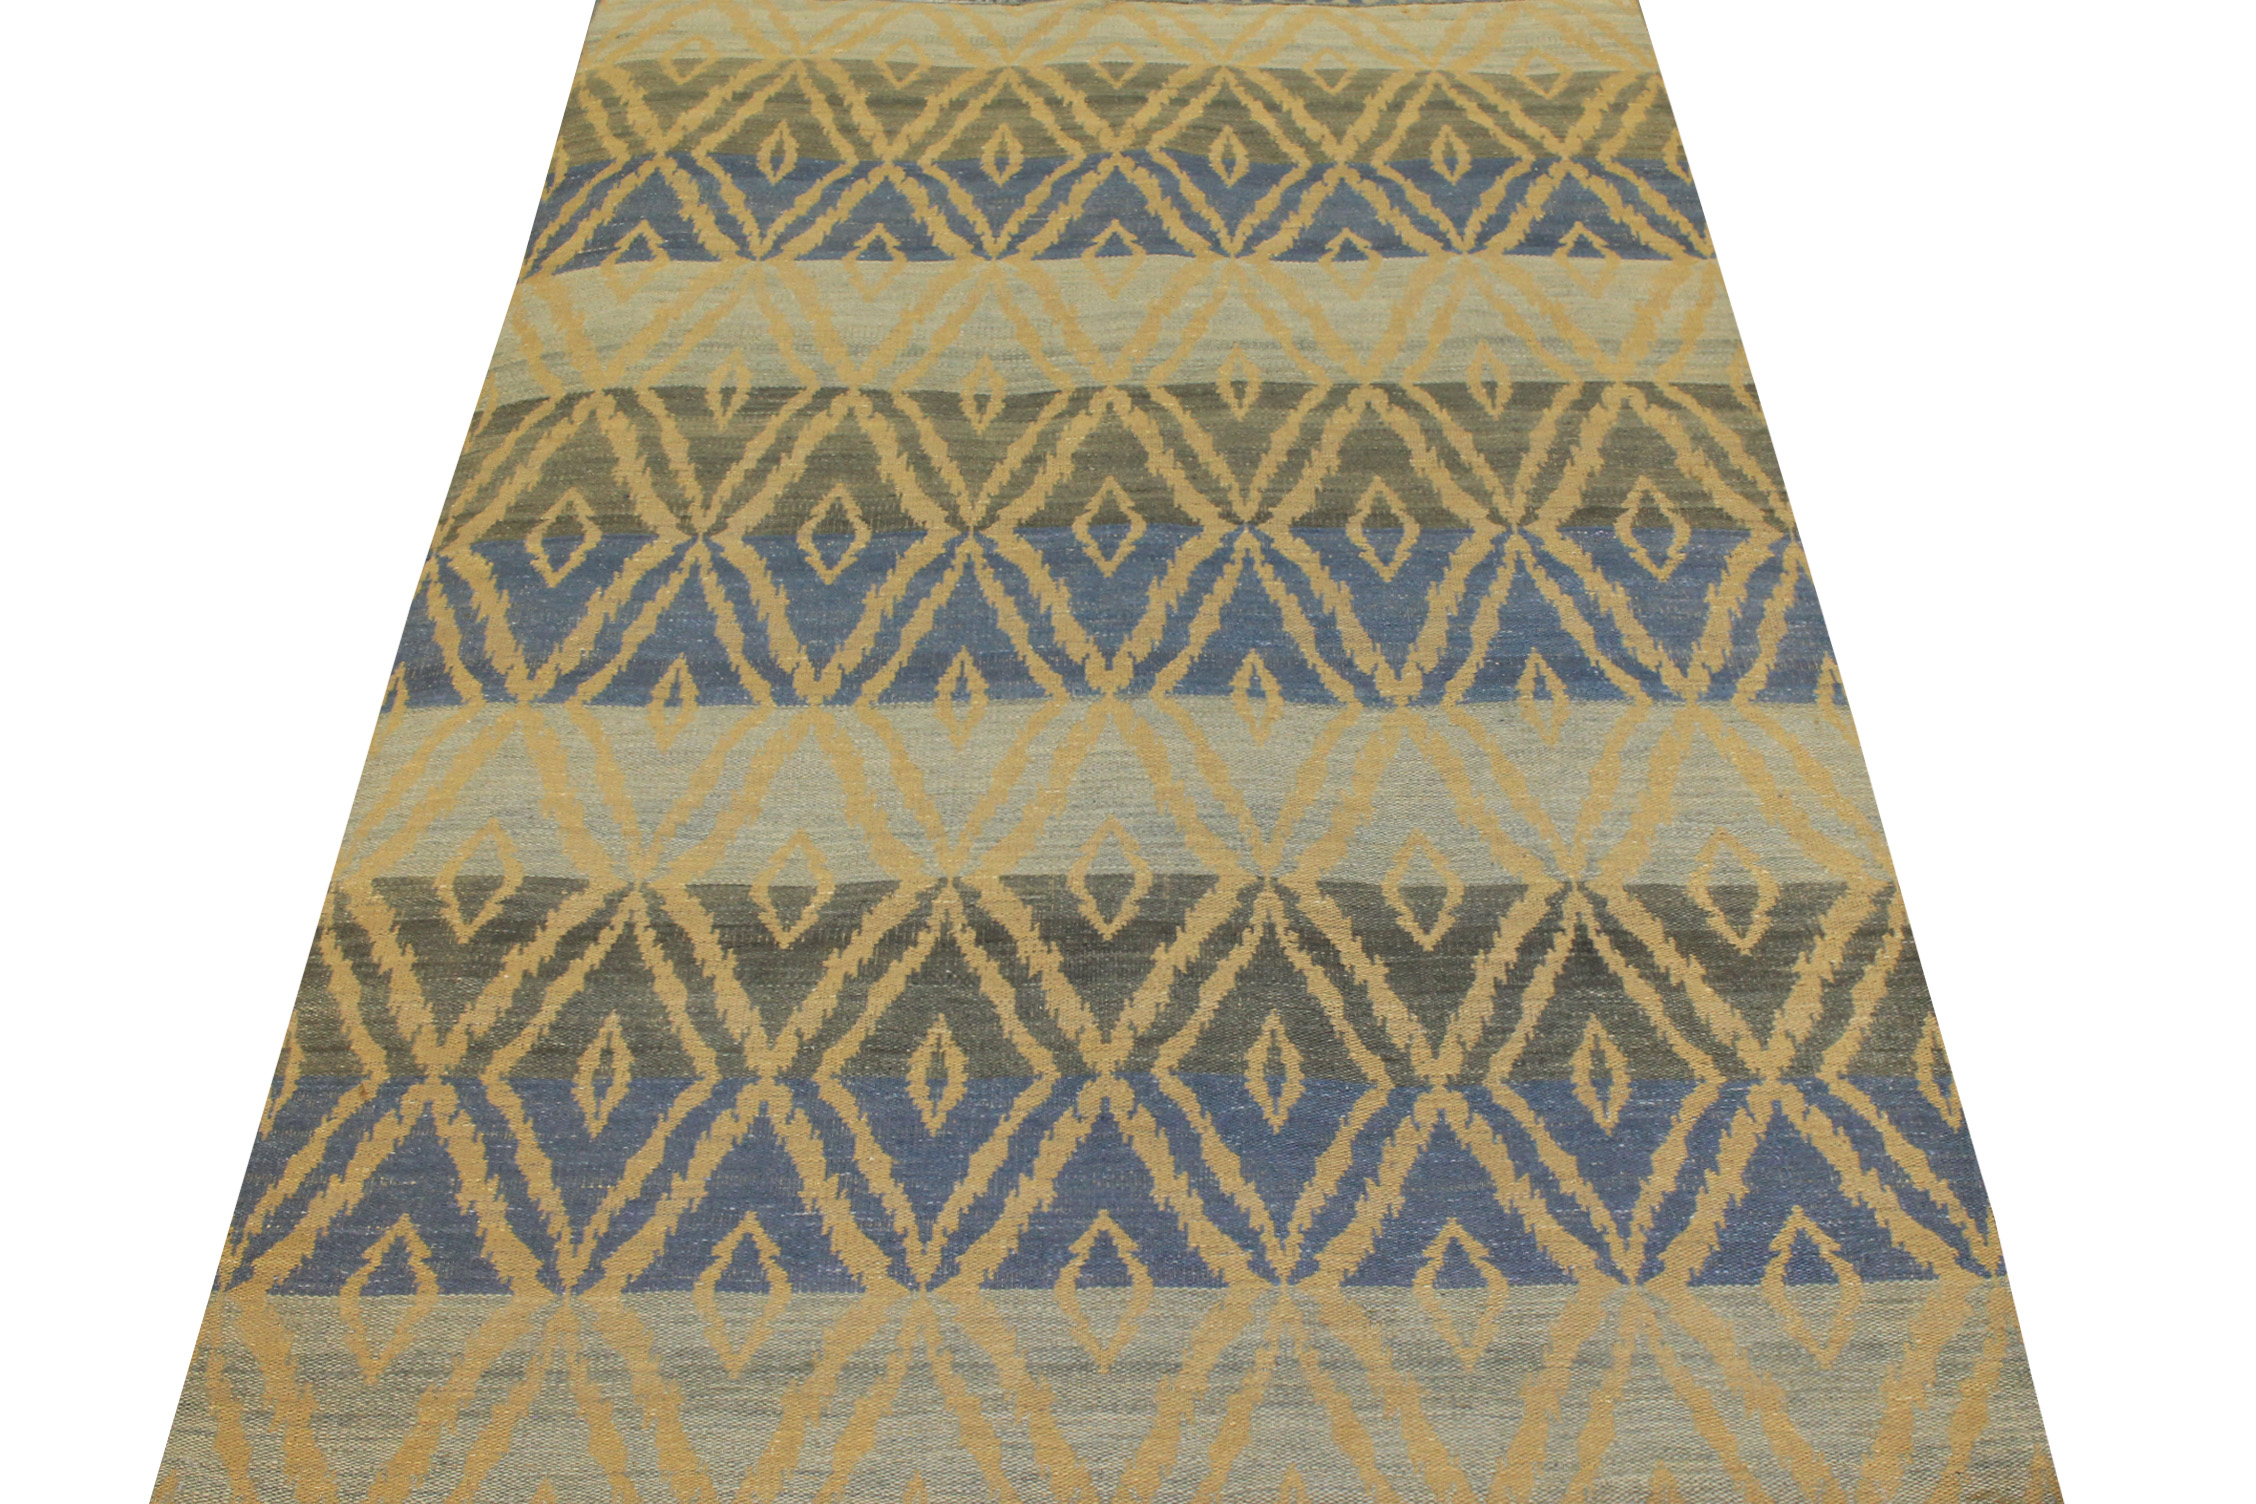 6x9 Flat Weave Hand Knotted Wool Area Rug - MR21027